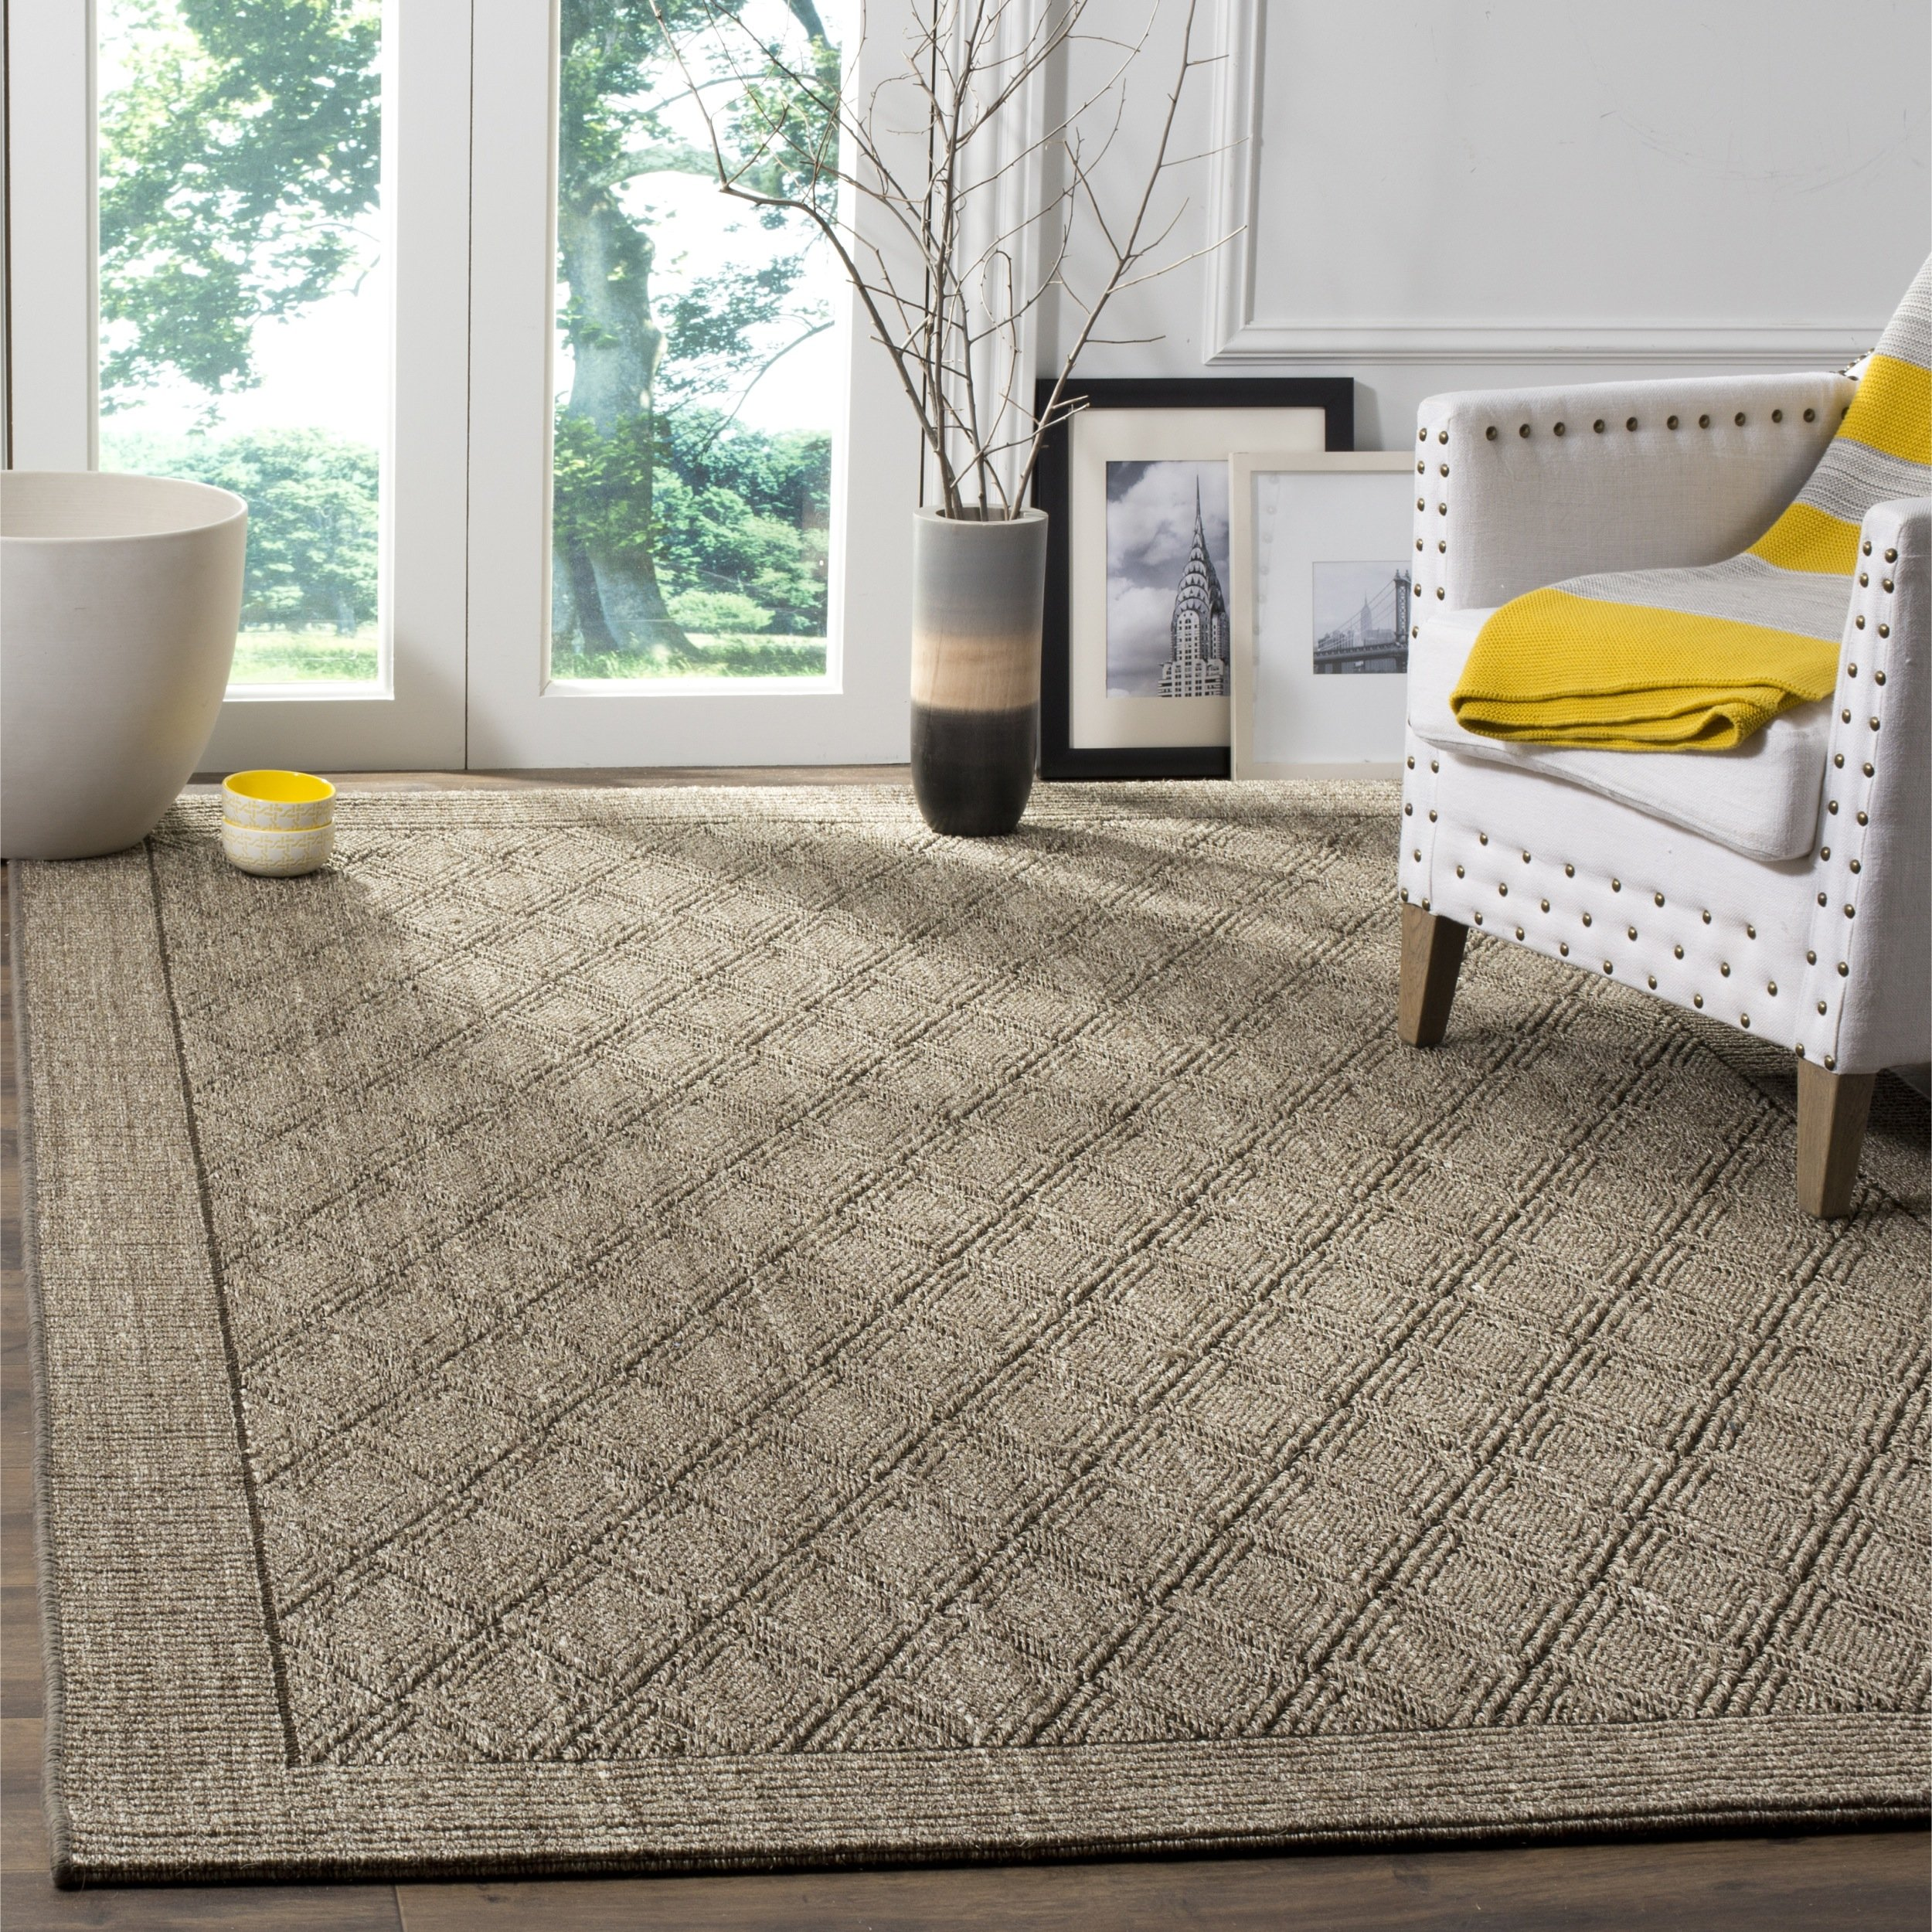 Safavieh Palm Beach Collection PAB351D Silver Sisal & Jute Area Rug (6' x 9') by Safavieh